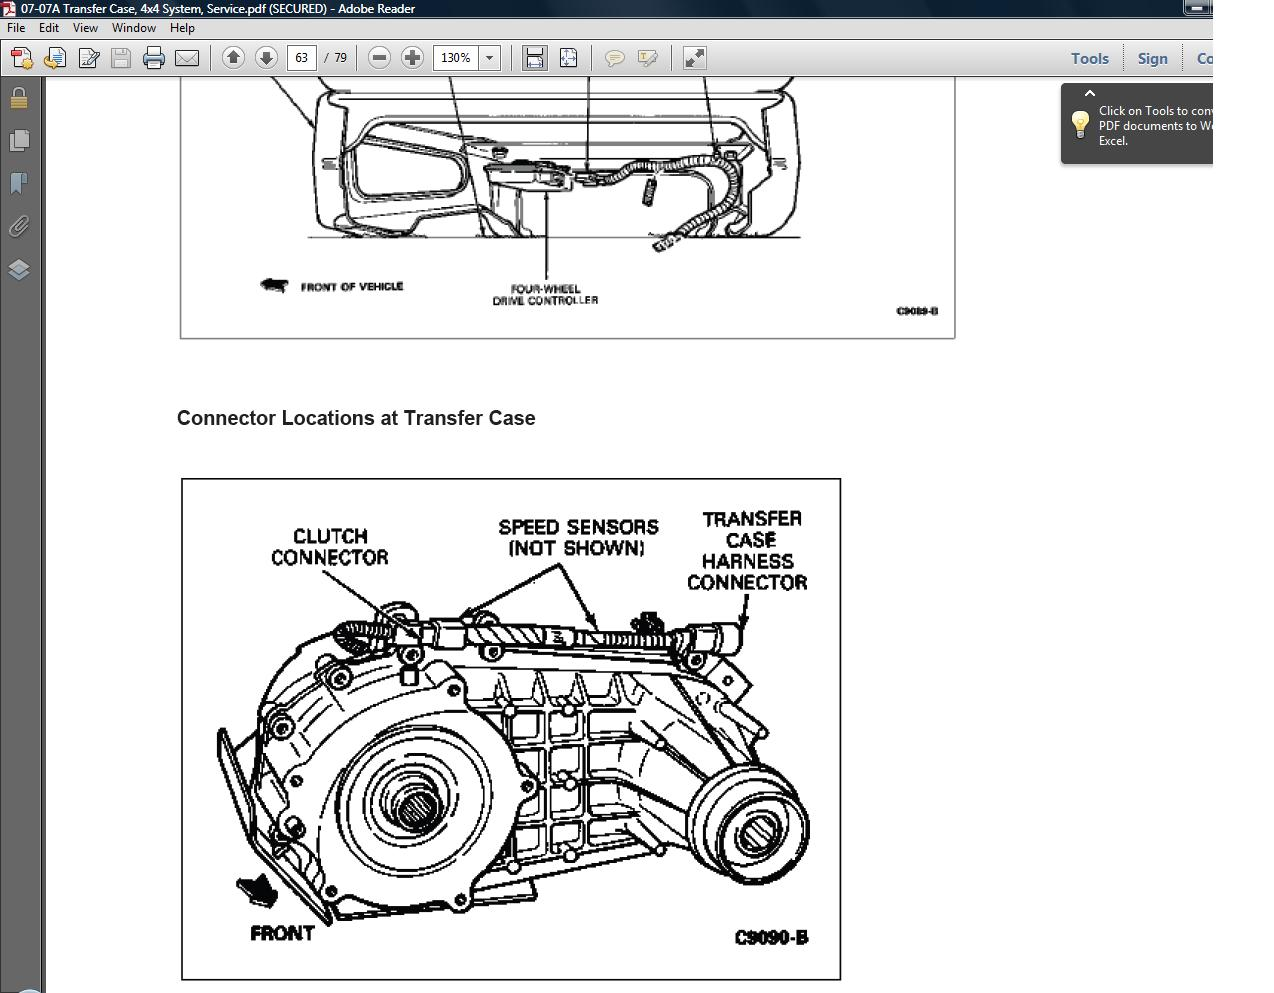 1993-94-95-96-97 Ford Ranger Transmission / Transfercase / 4x4 system Service  Repair Manual. >